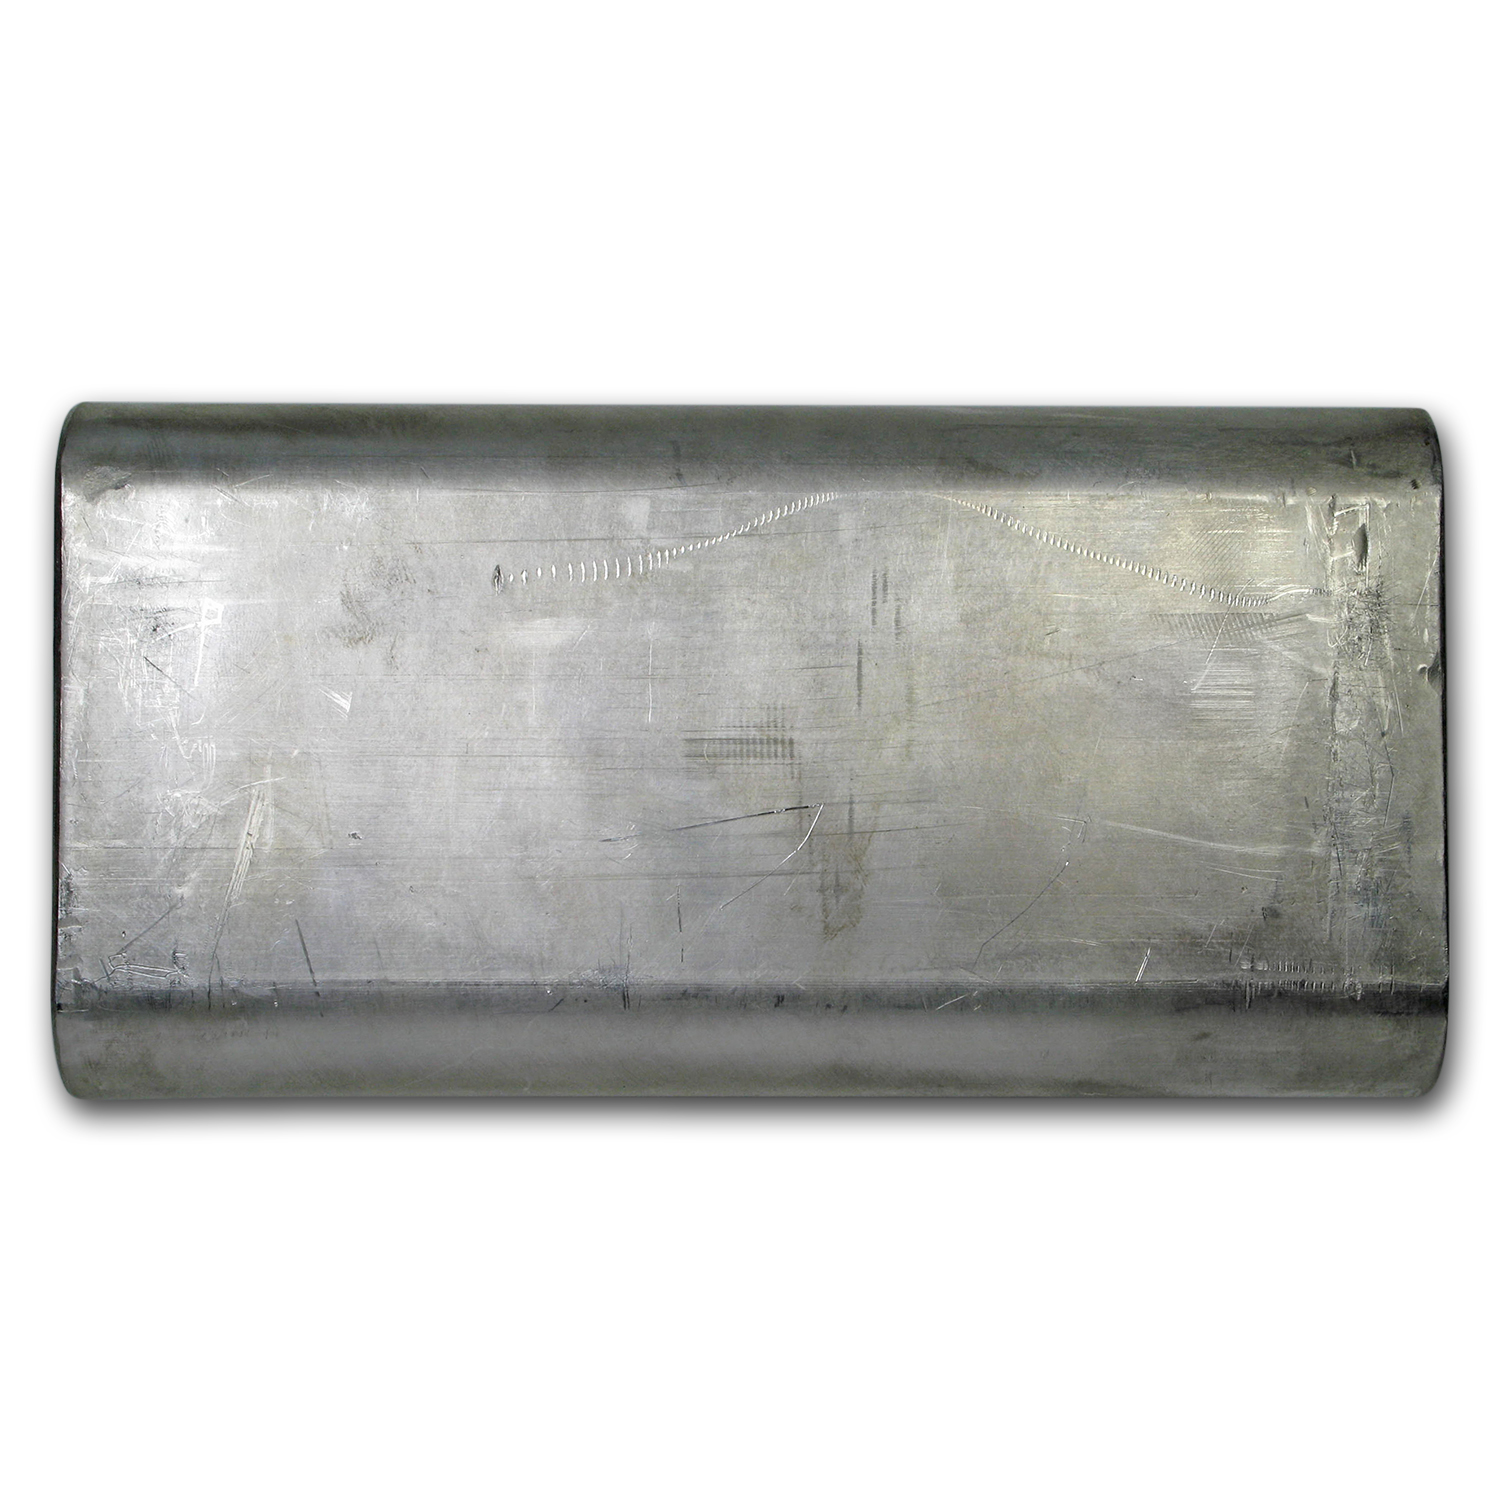 100 oz Silver Bar - Wolverine (Extruded)